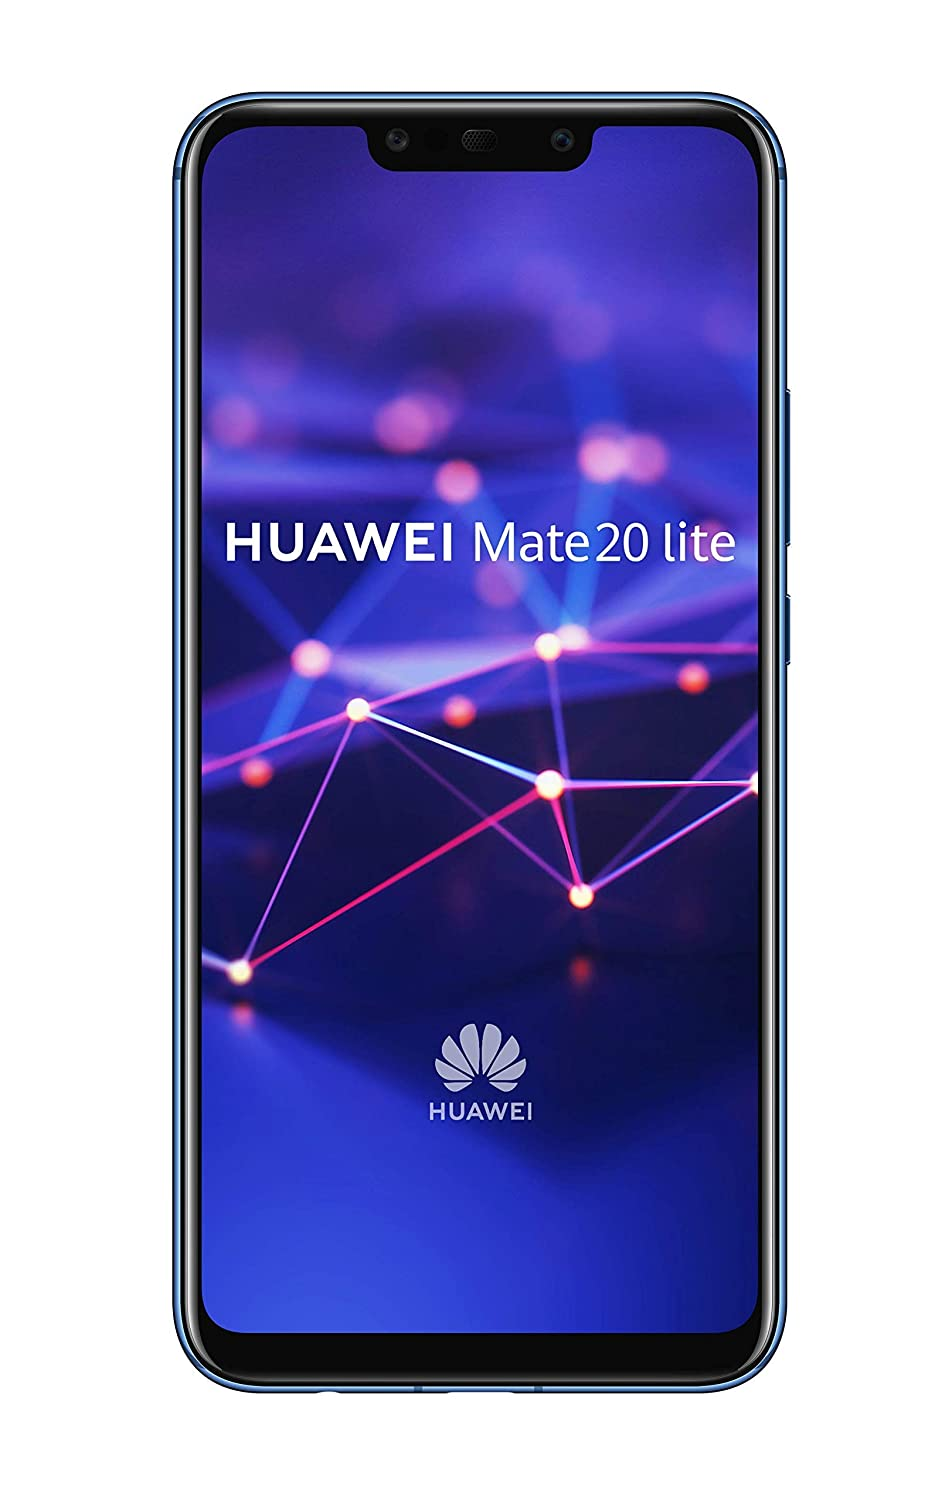 Huawei Mate20Lite 4 GB/64 GB Dual SIM Smartphone - Sapphire Blue (international)